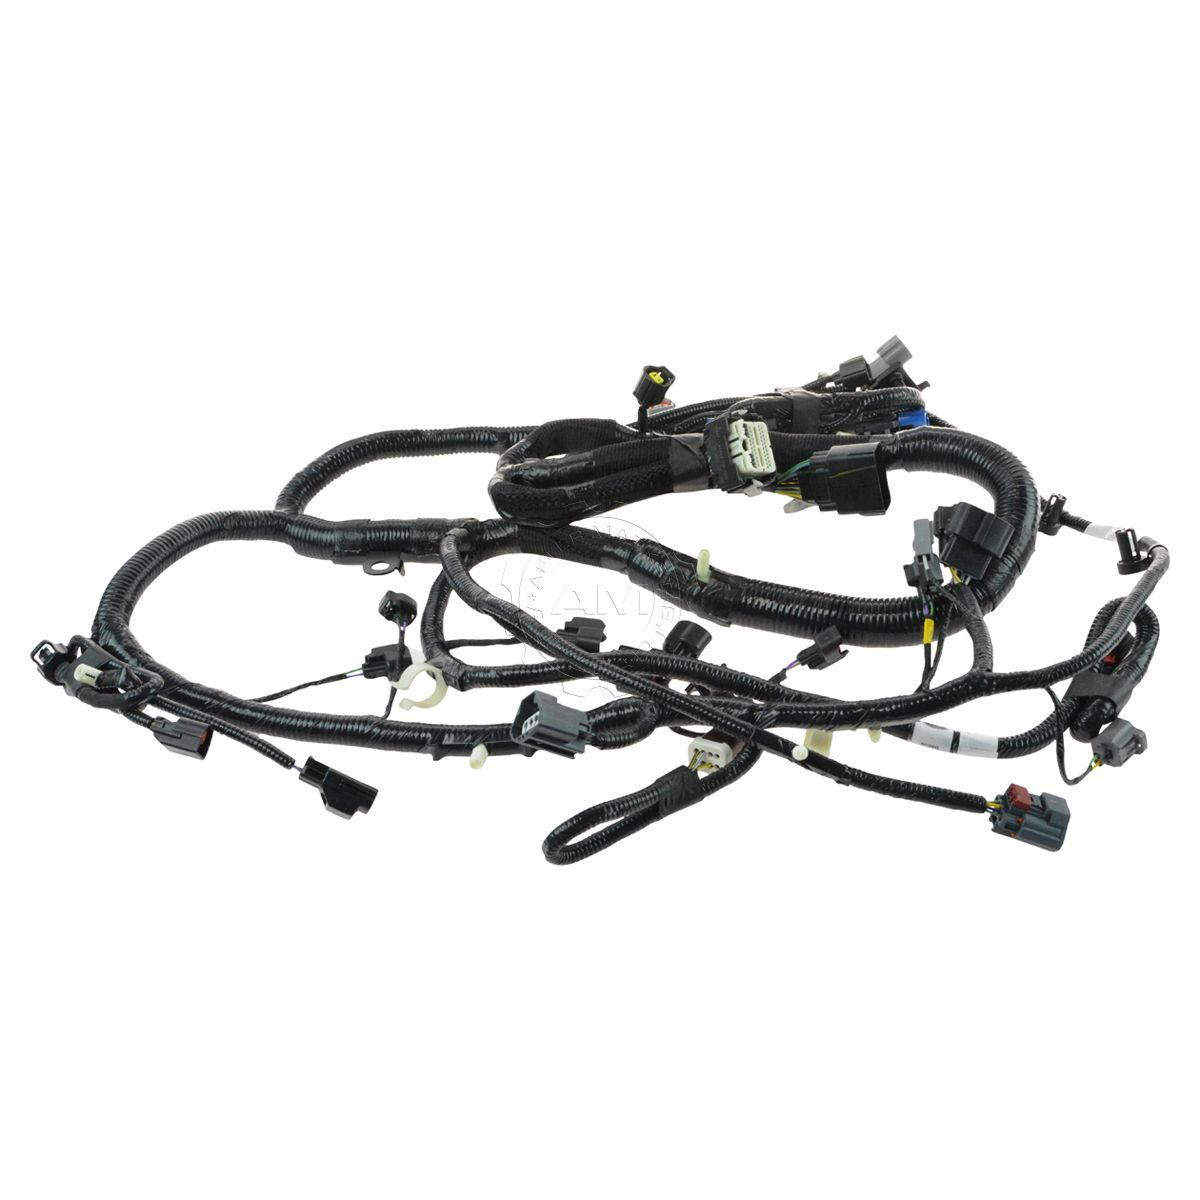 4 6 Engine Swap Harness